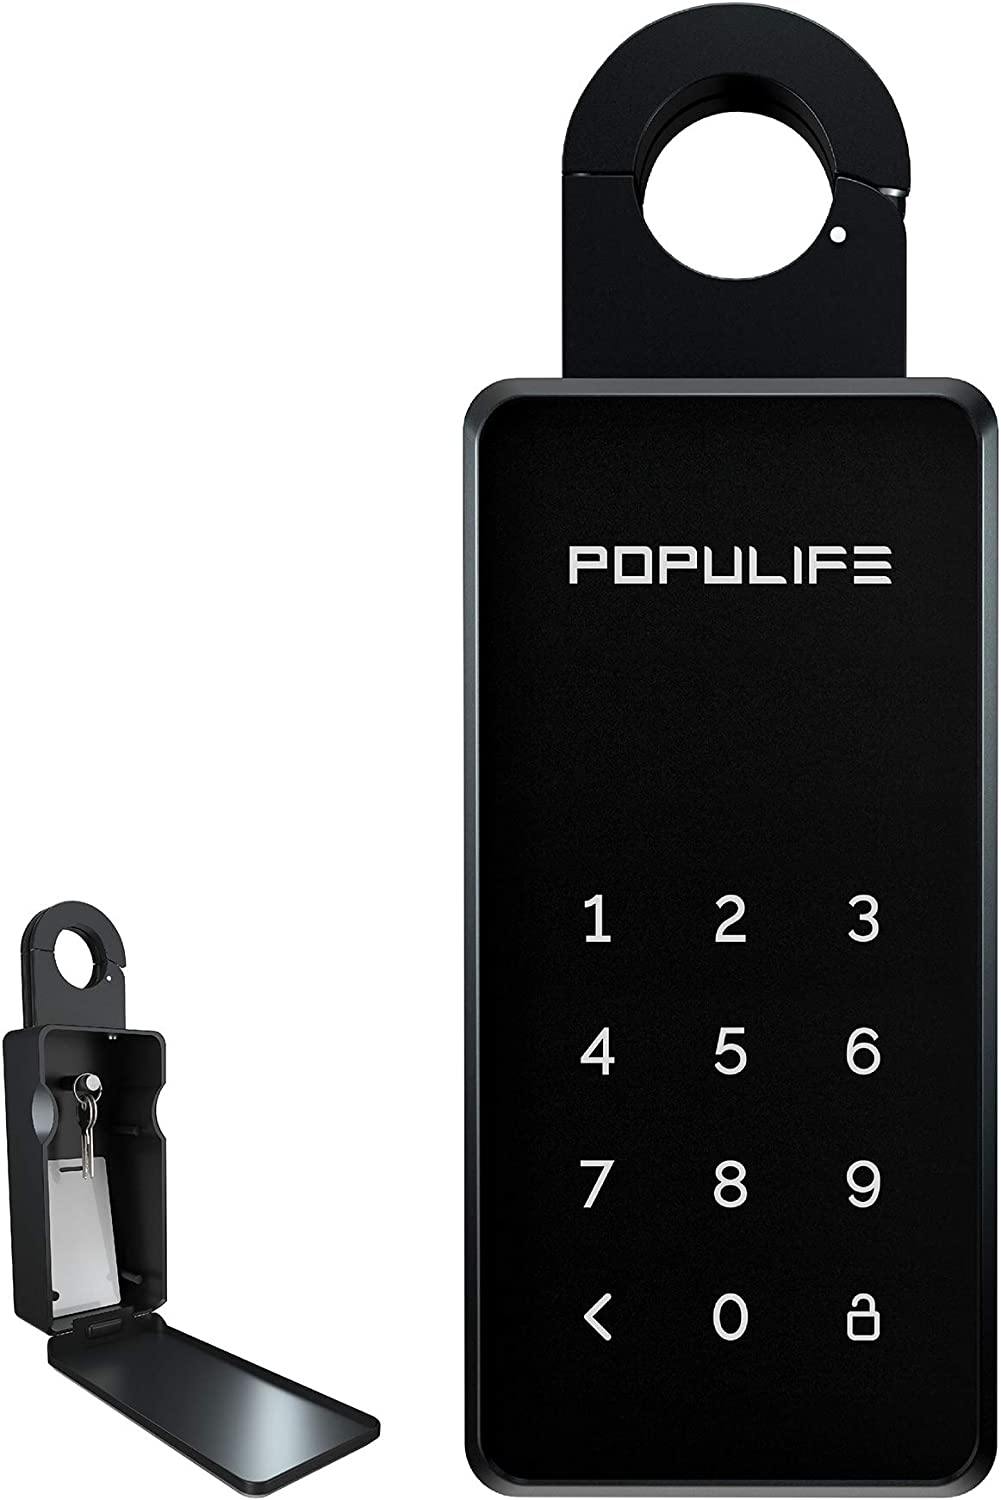 Populife Keybox,IP65 Bluetooth Smart Key Lock Box Replaceable Password for Home, Hotel, School, Office